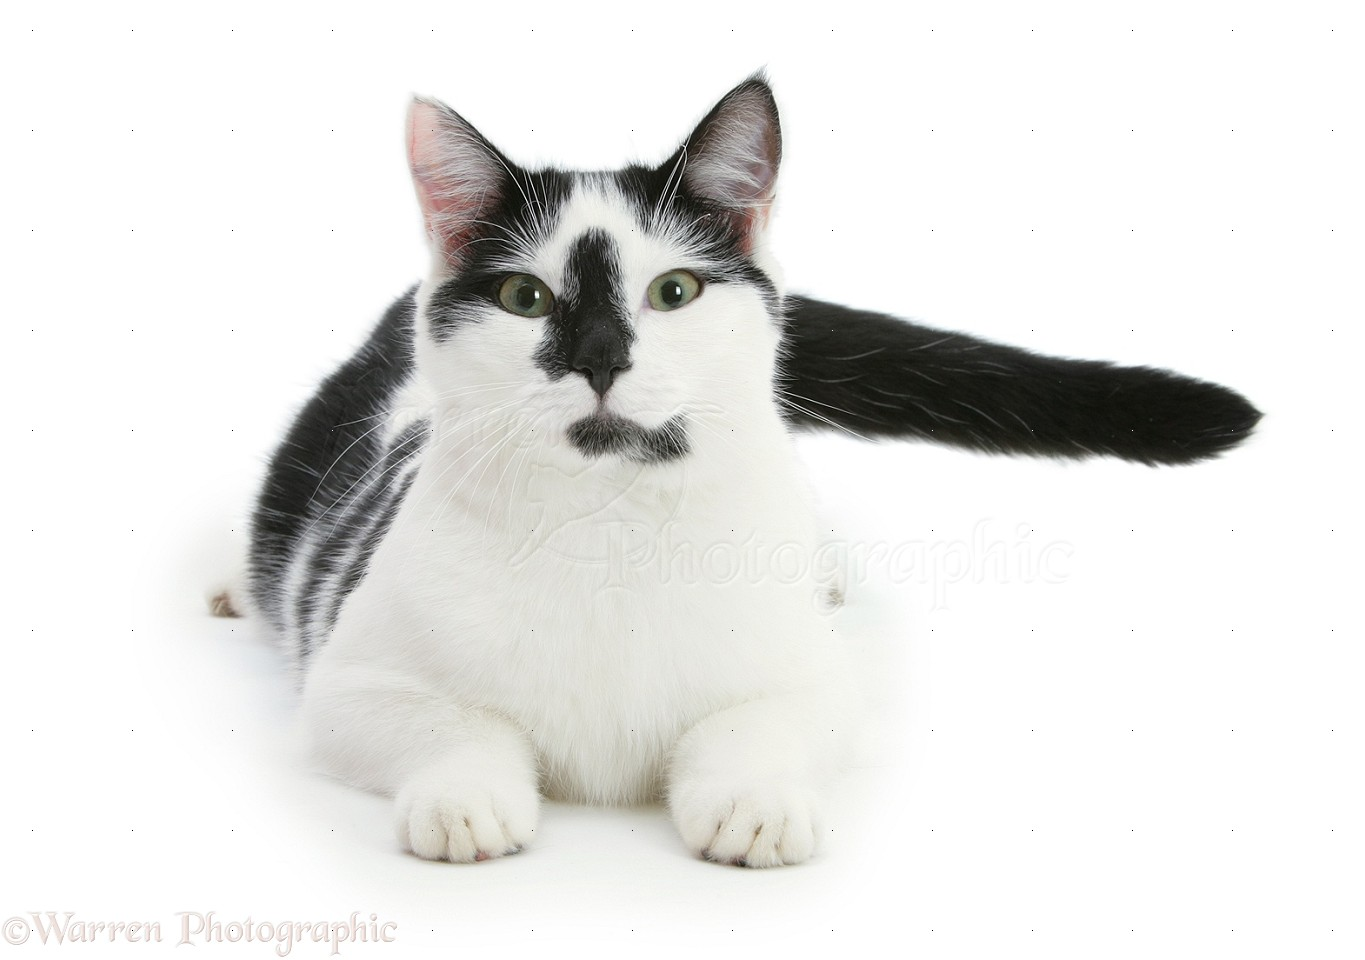 Pepper's creation 18717-Black-and-white-cat-lying-with-head-up-white-background